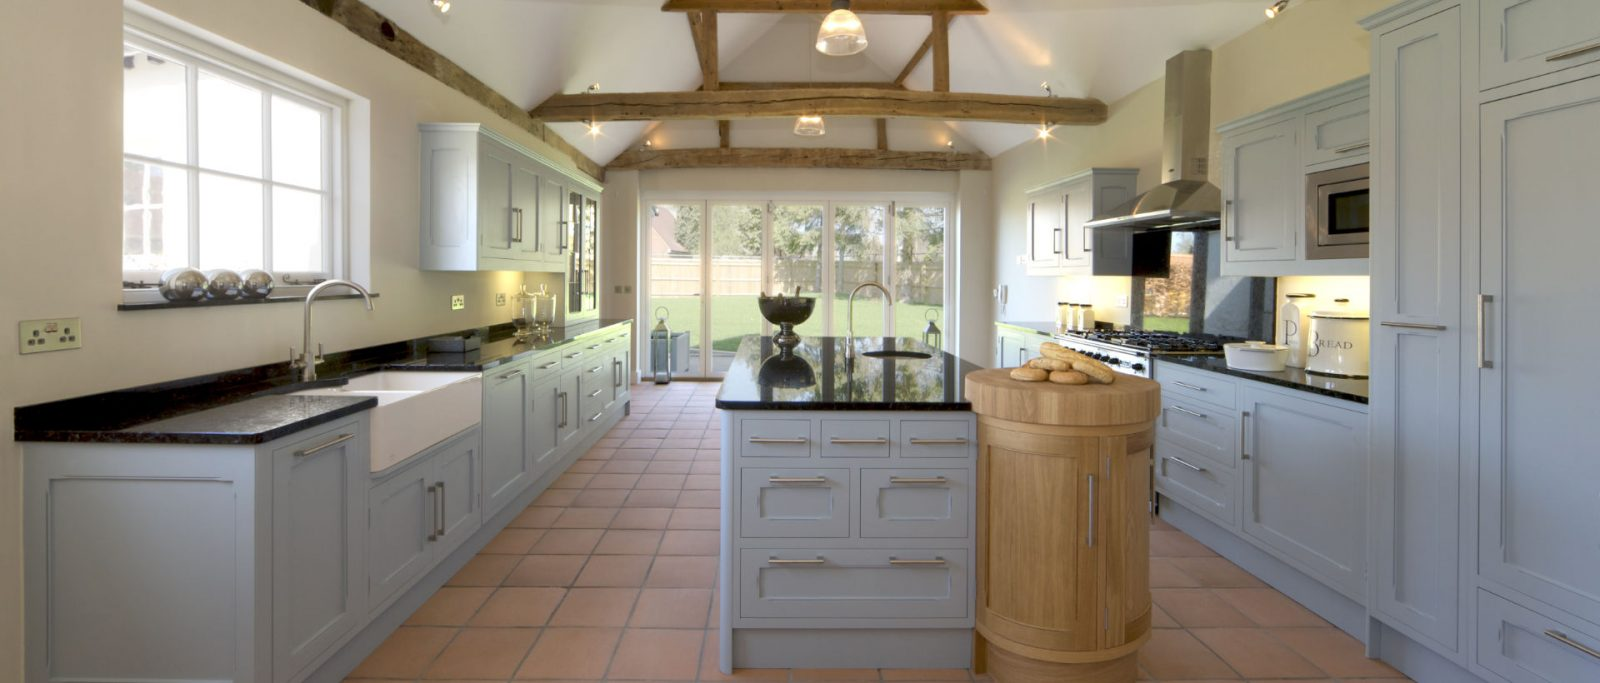 We carry out finishing the kitchen in a wooden house 56